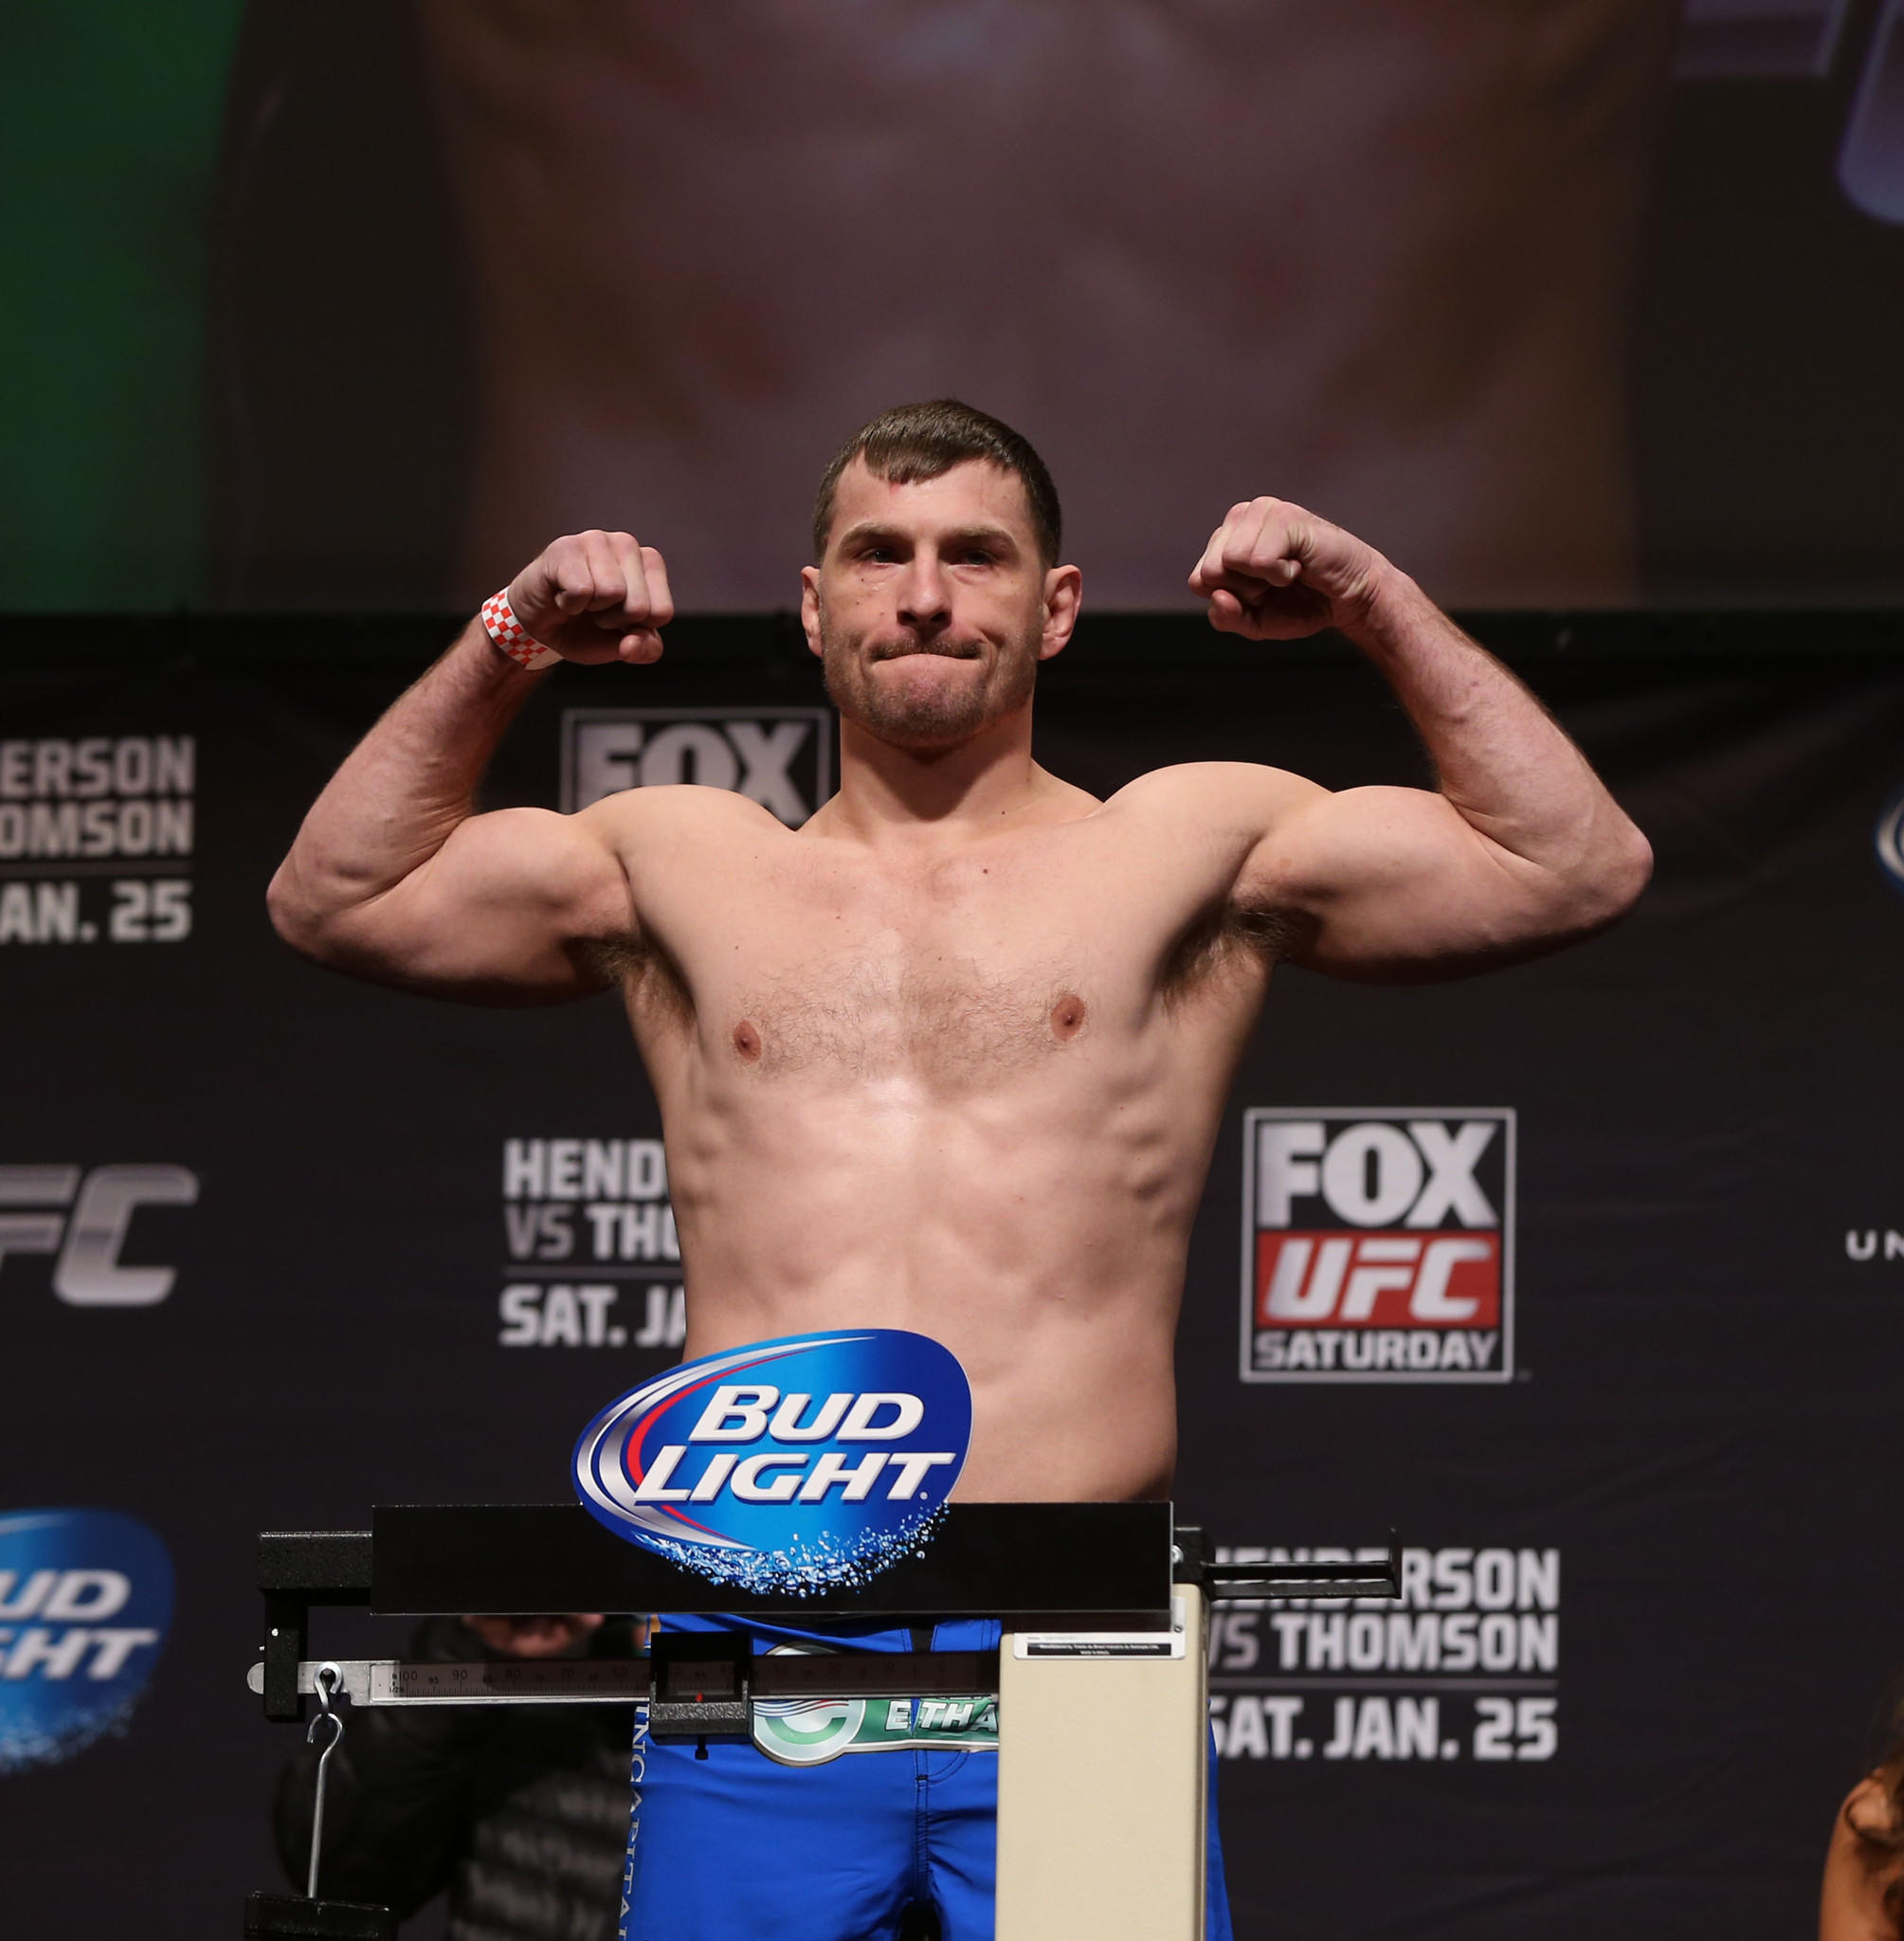 Stipe Miocic steps on the scale at the weigh in at the Chicago Theatre in Chicago on Friday, Jan. 24, 2014, a day before his heavyweight bout at the FOX UFC Saturday event to be held at the United Center in Chicago.